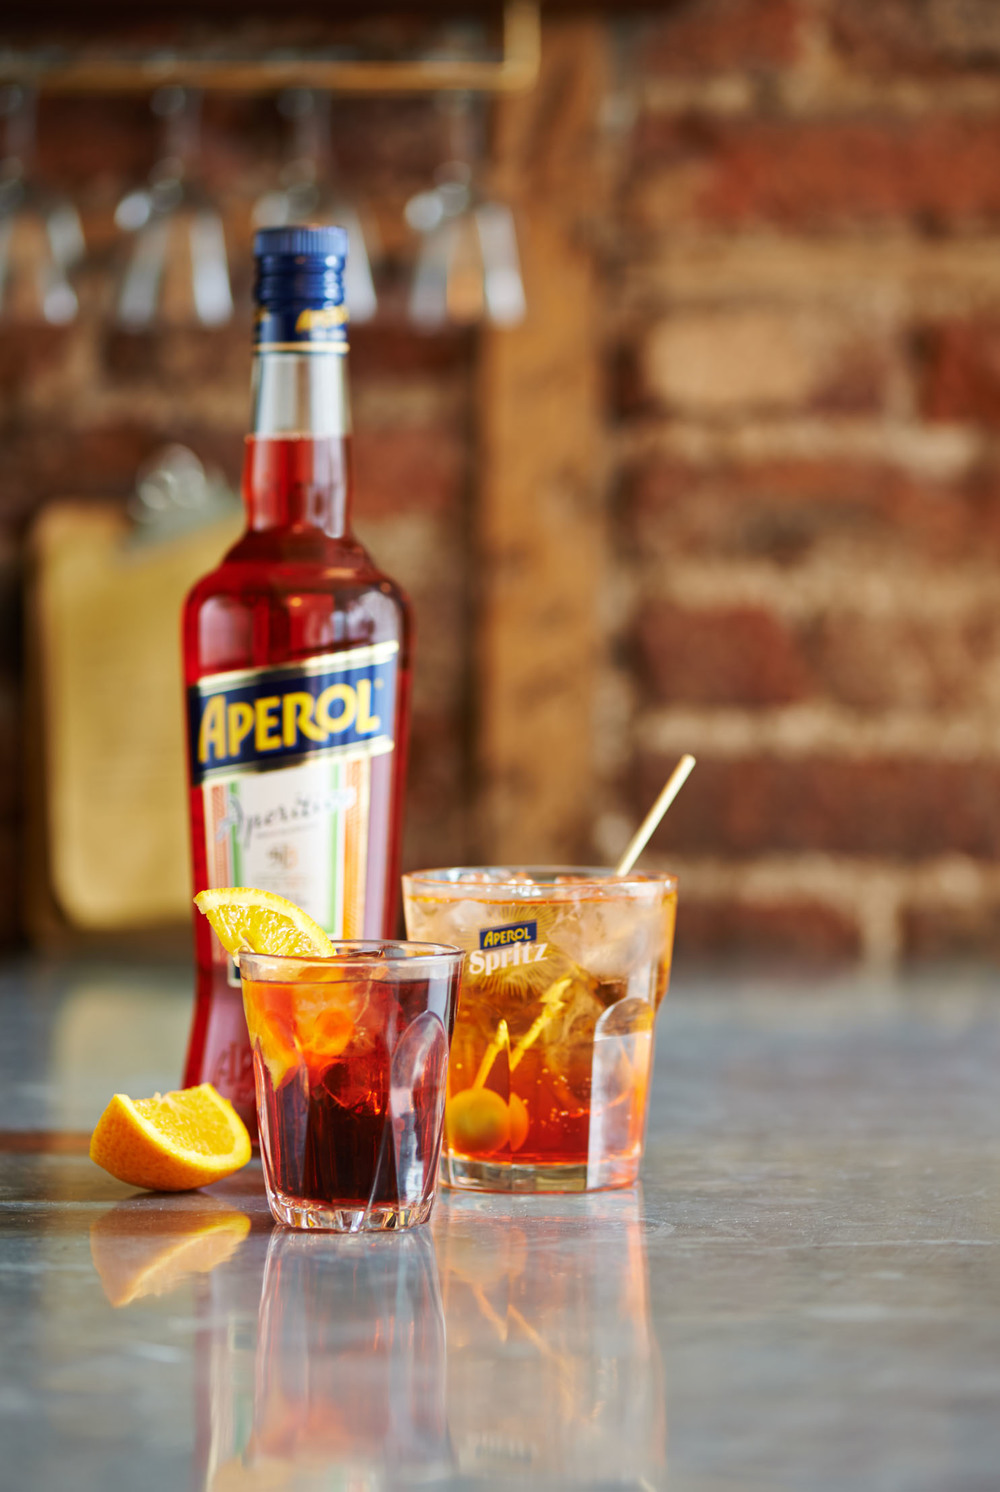 bottle of Aperol and glass of Aperol Spritz